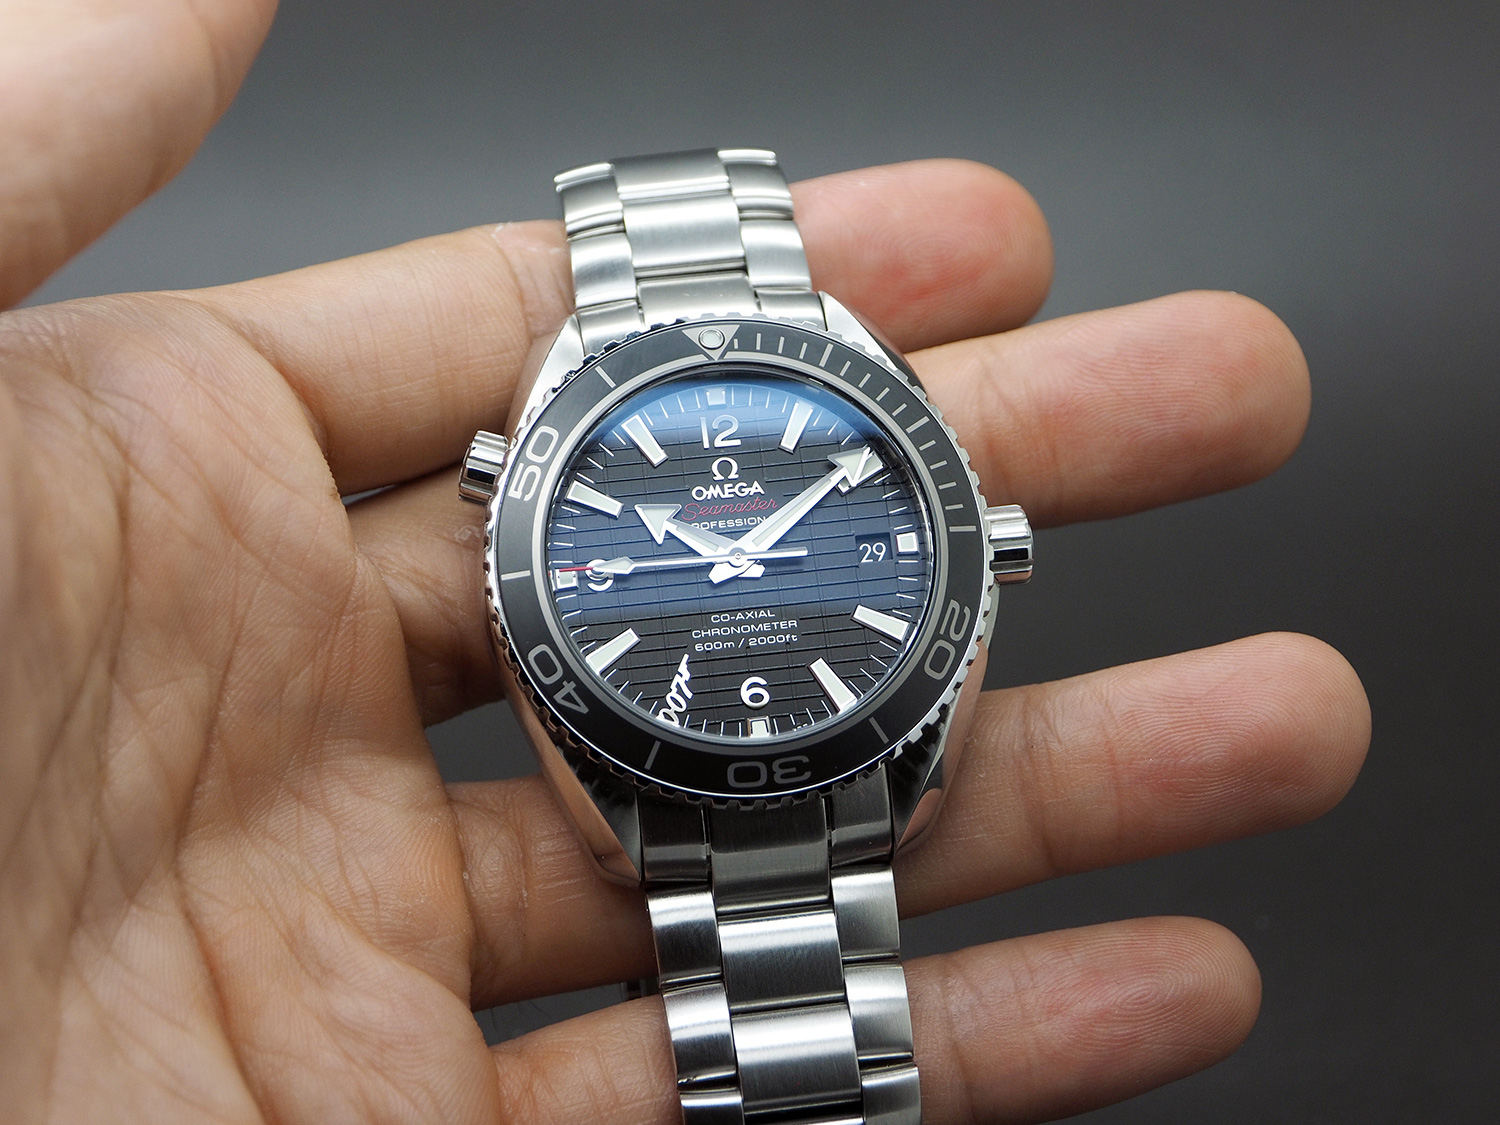 Omega Seamaster Planet Ocean Automatic Black Ceramic 42 mm 007 SKYFALL Limited Edition 7